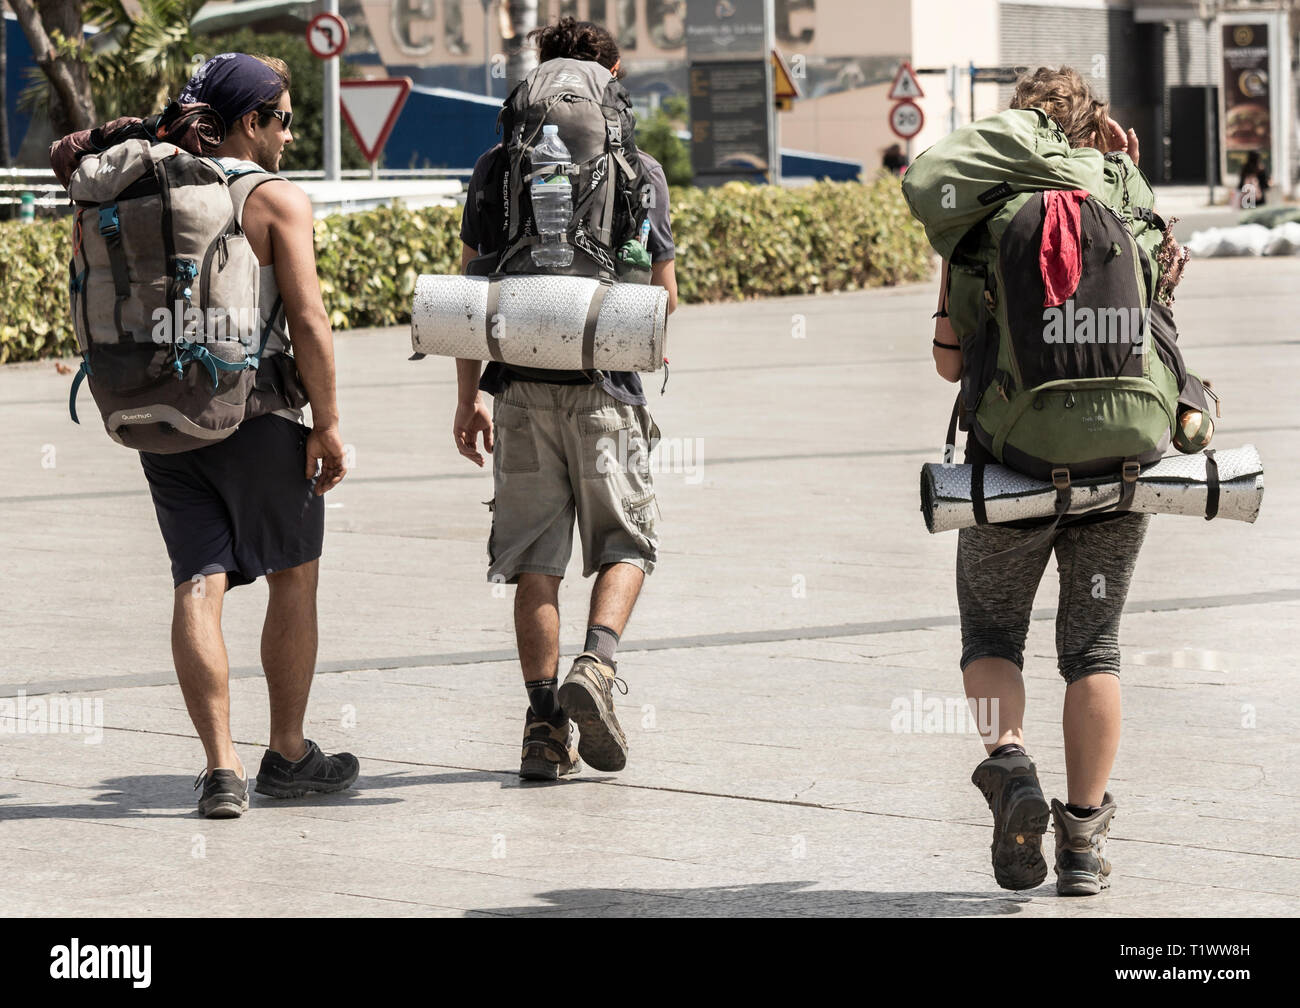 Three young people carrying large rucksacks. Gap year, adventure, travel... - Stock Image